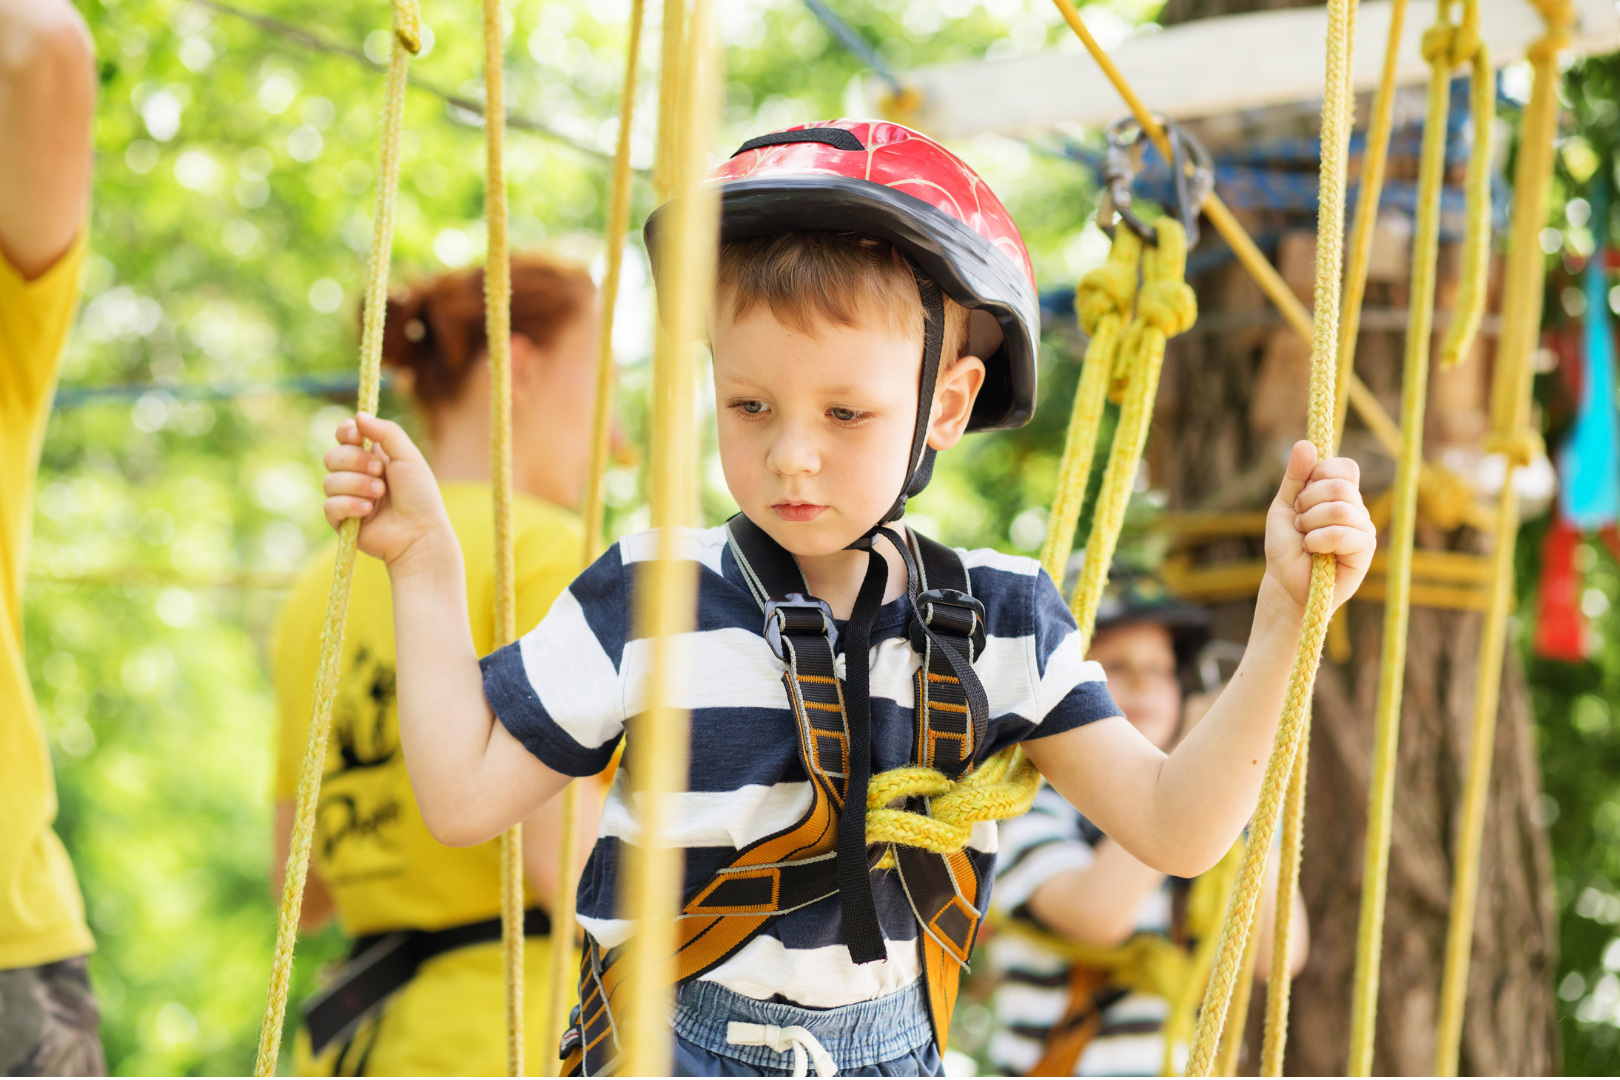 Oyama Zipline - What: Weekly toddler drop-in fun at Oyama ZiplineWhere: Oyama Zipline, LAKE COUNTRYWhen: 10 a.m. every Wednesday all summerCost: $15More: Click here